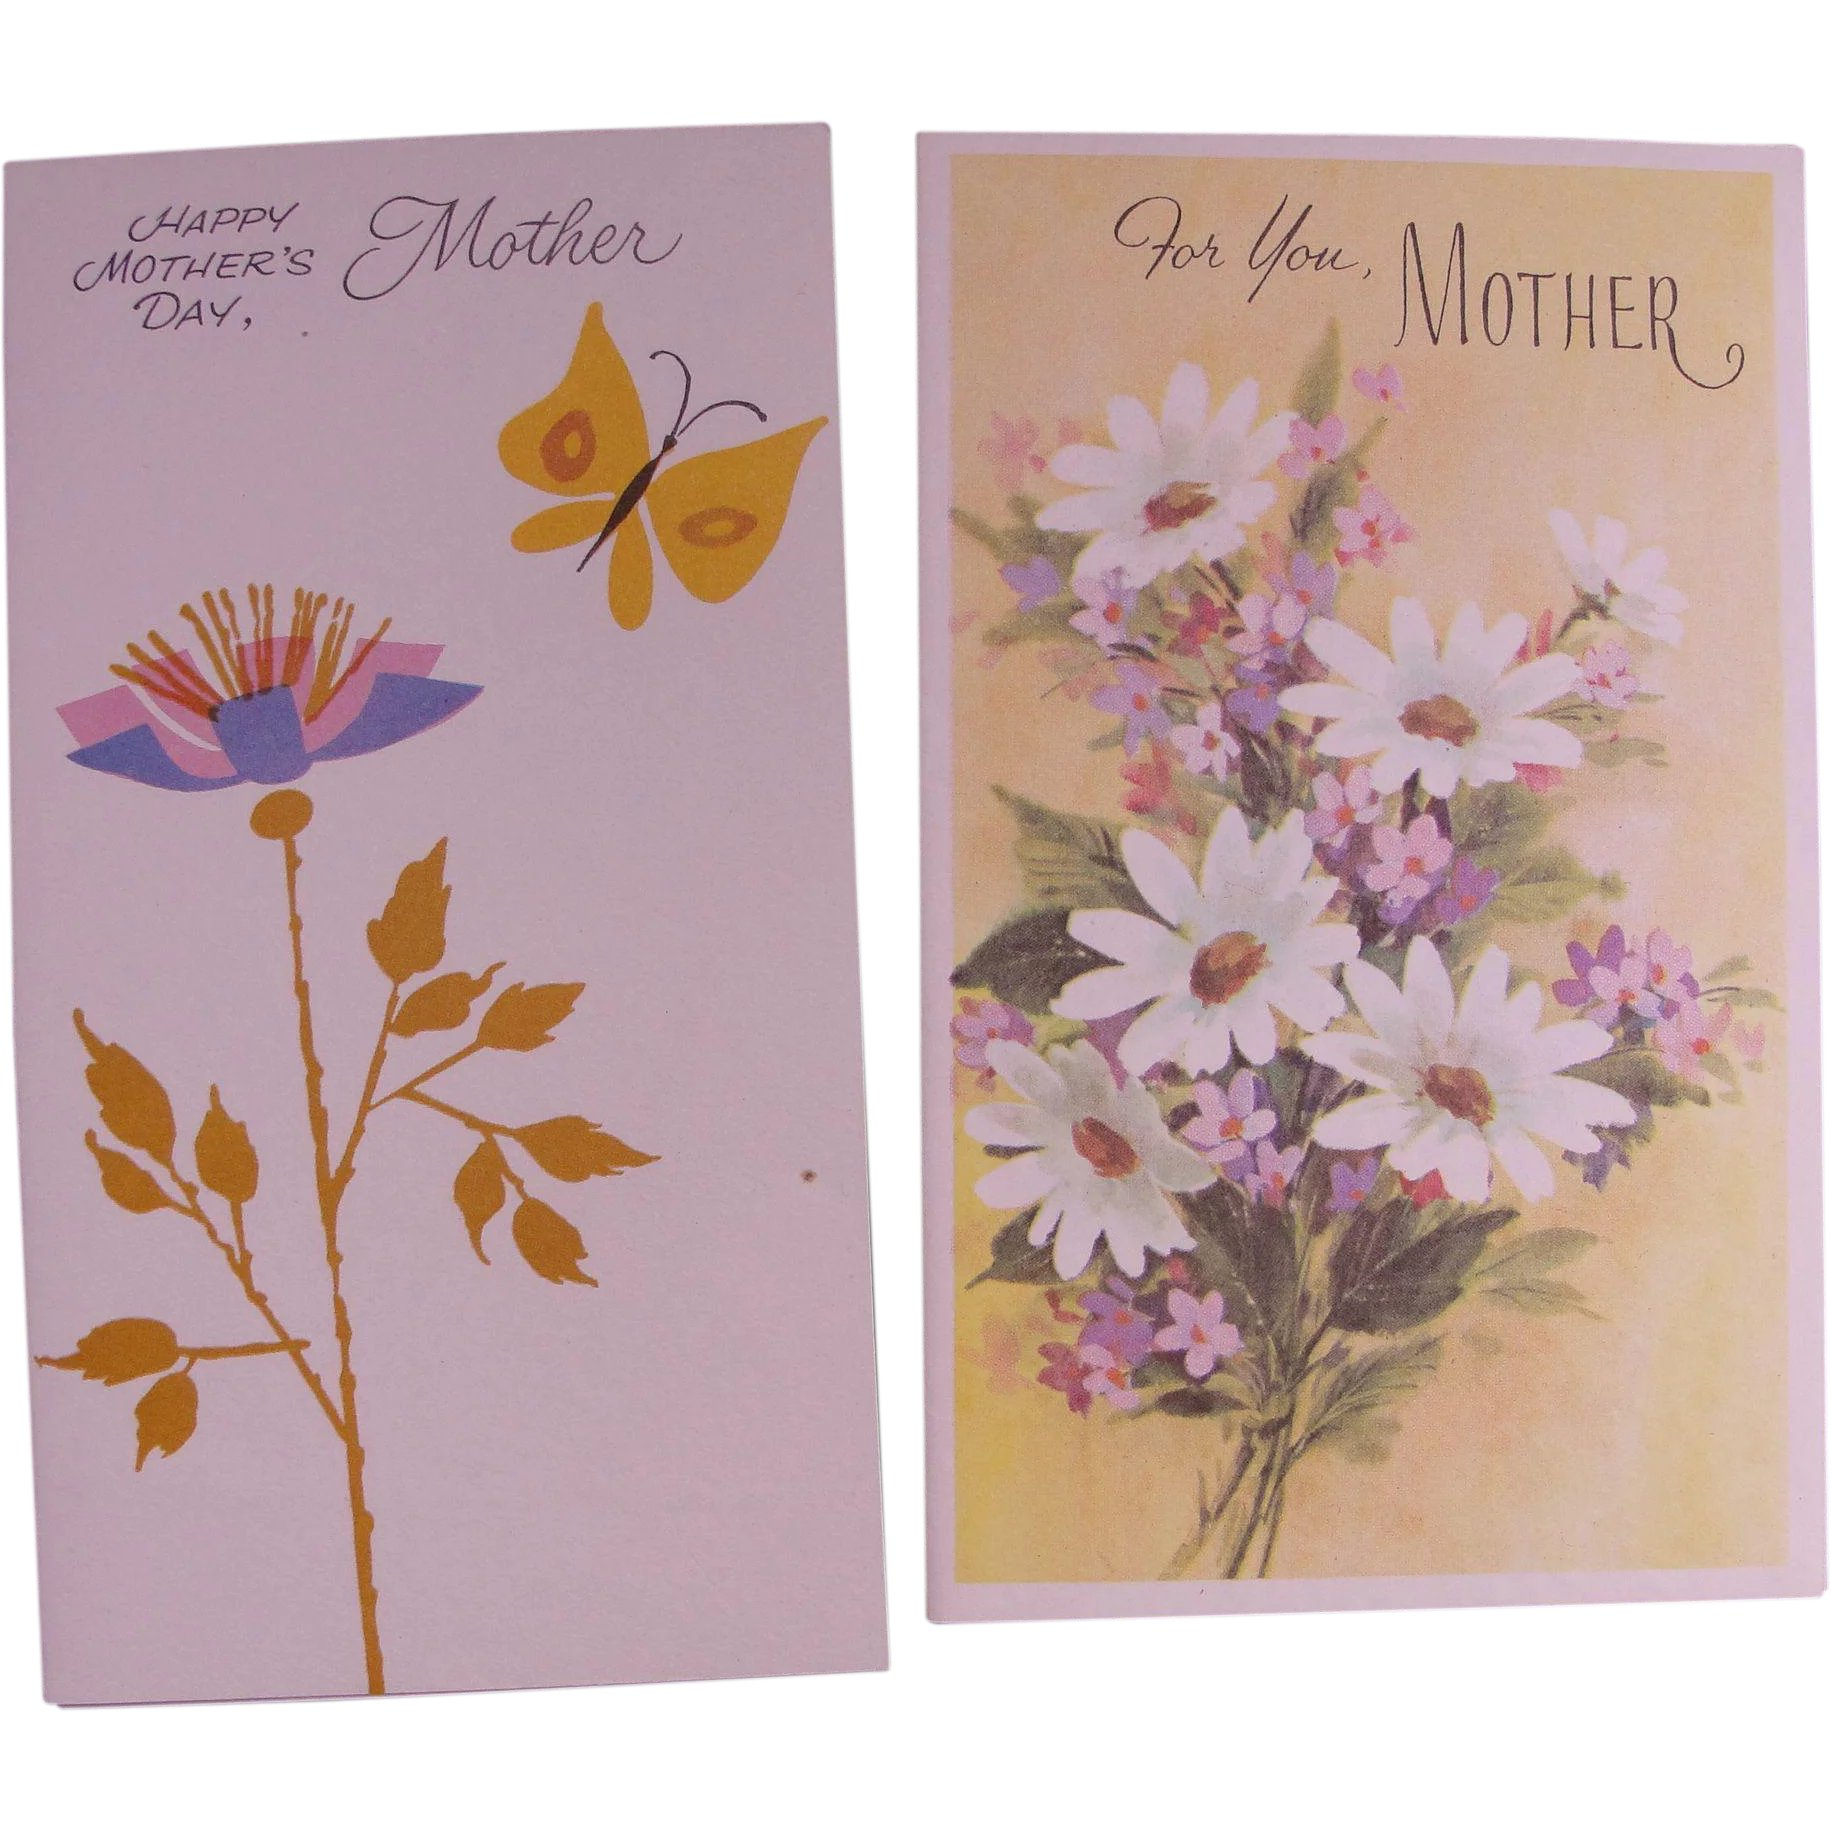 Vintage Greeting Cards Mothers Day Unused Uncirculated Chantilly